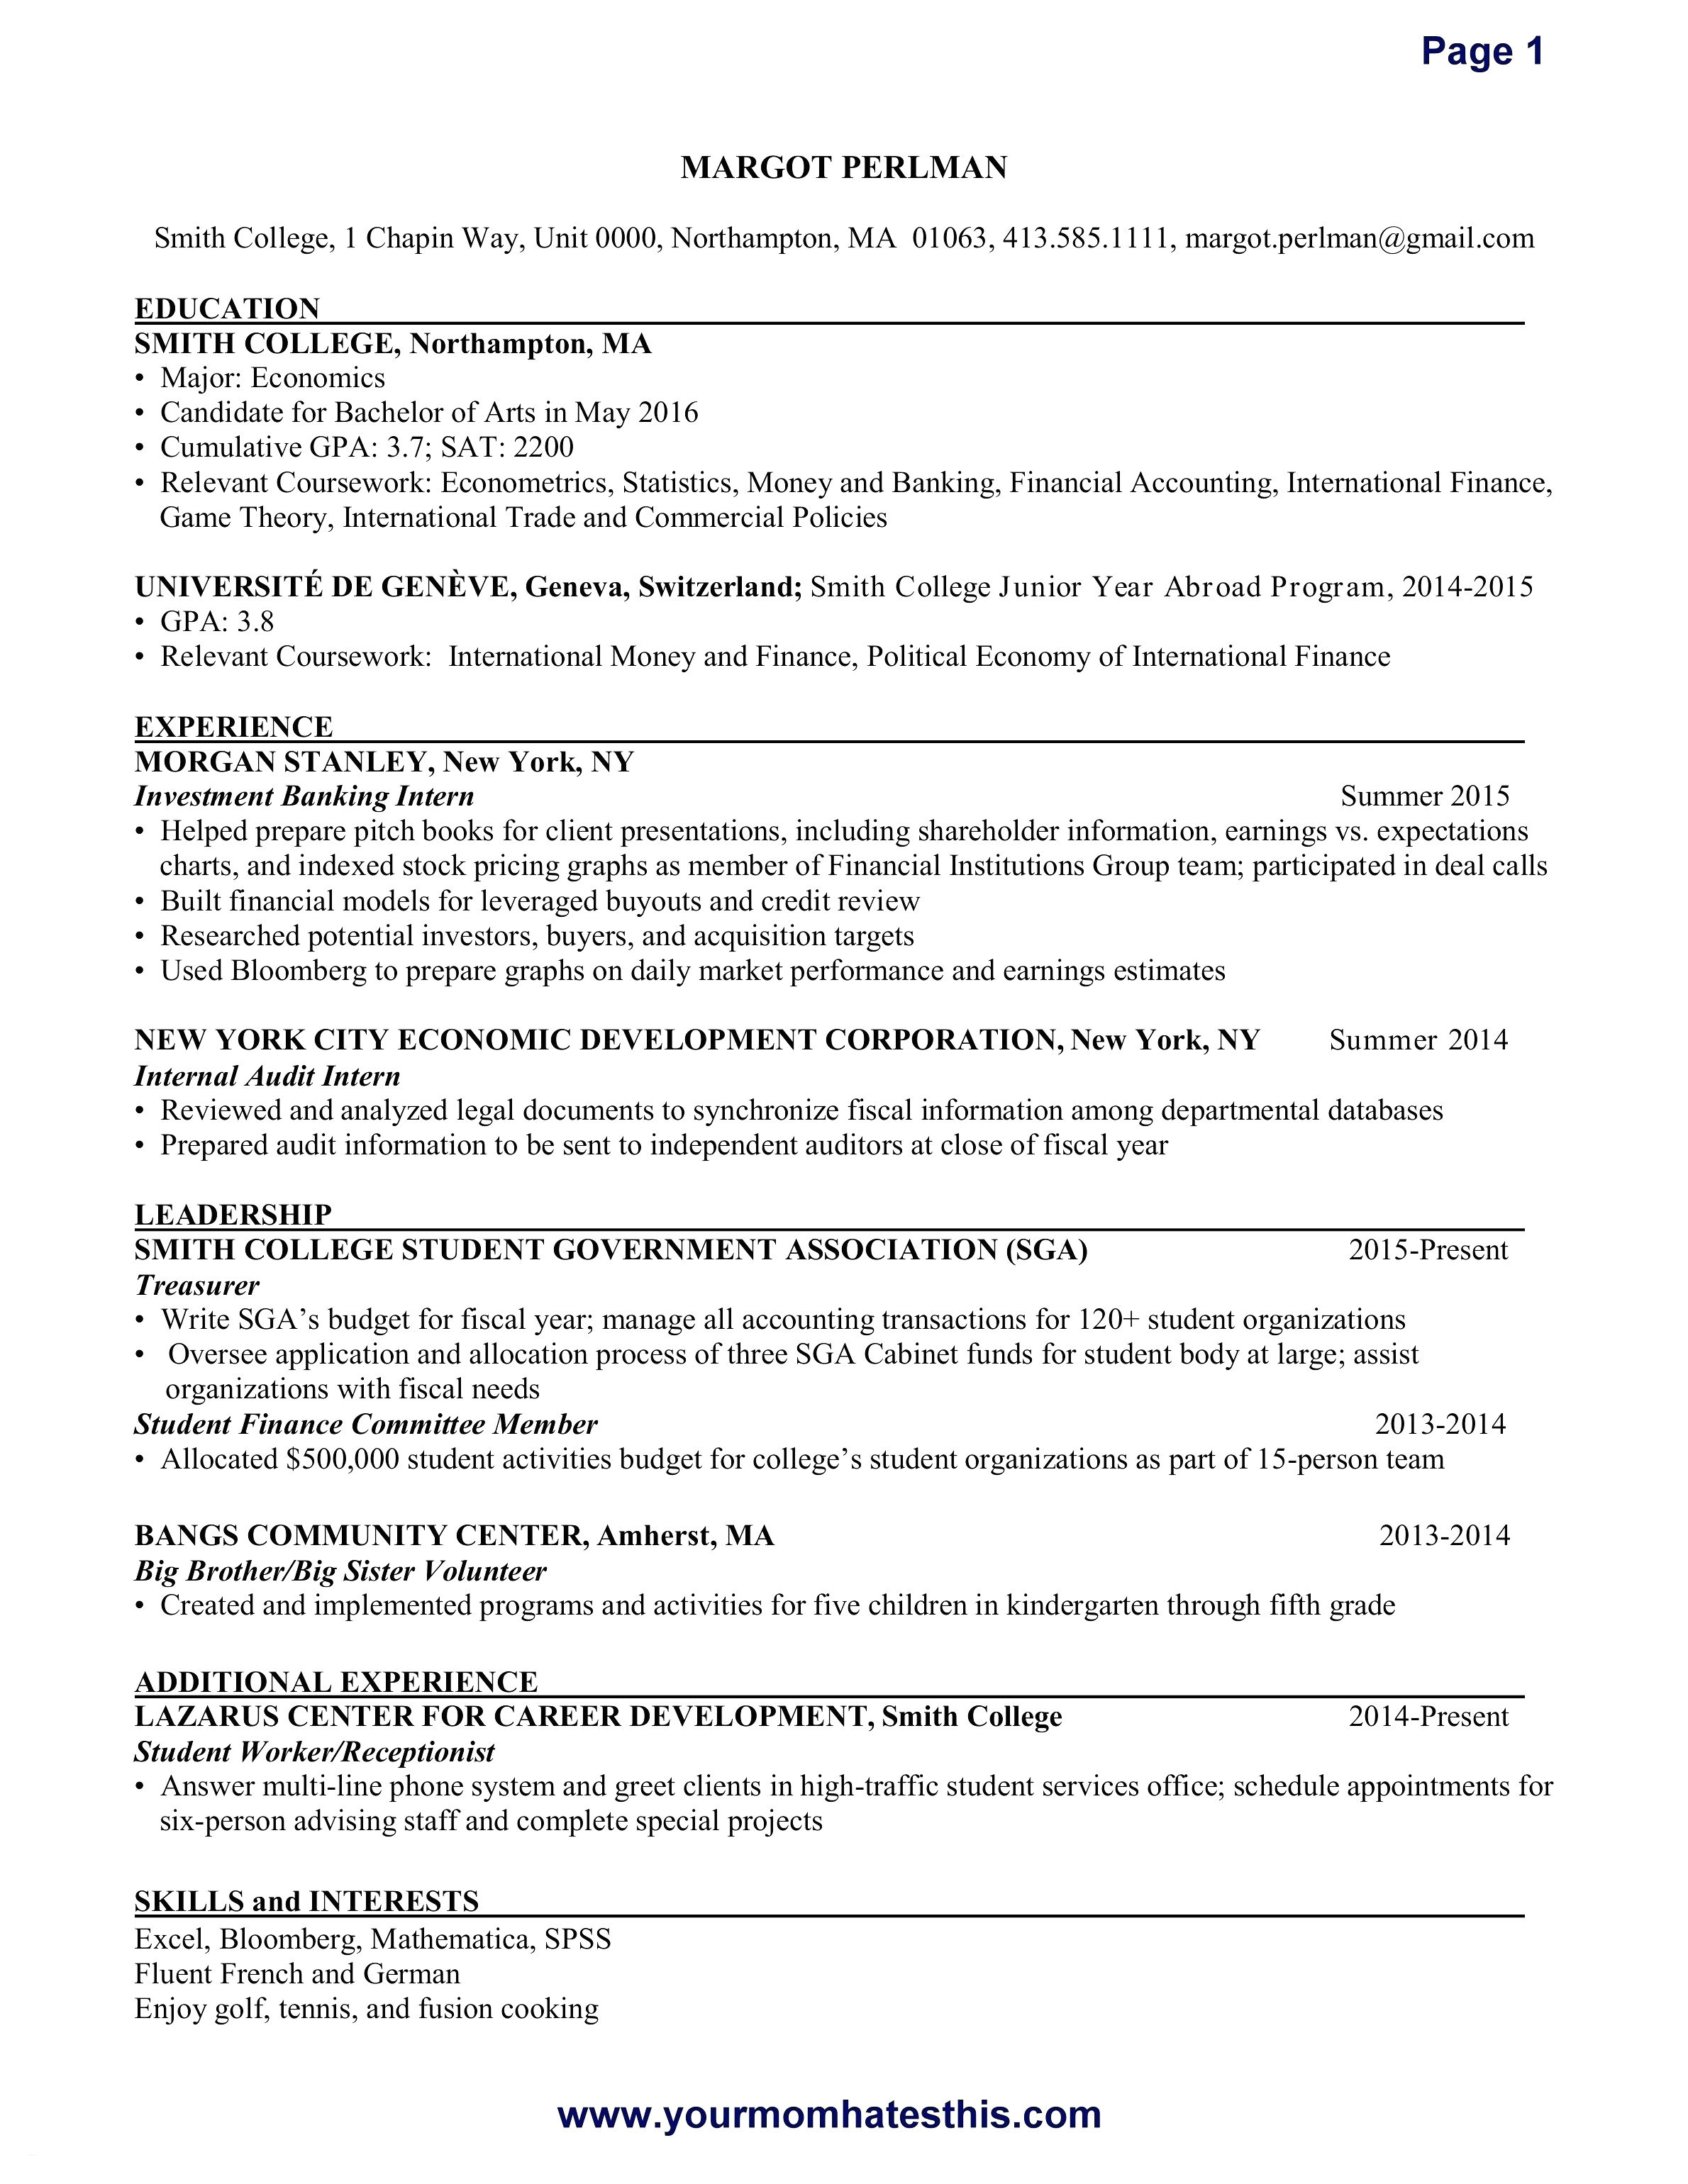 Police Officer Resume Template - Awesome Security Ficer Resume Sample